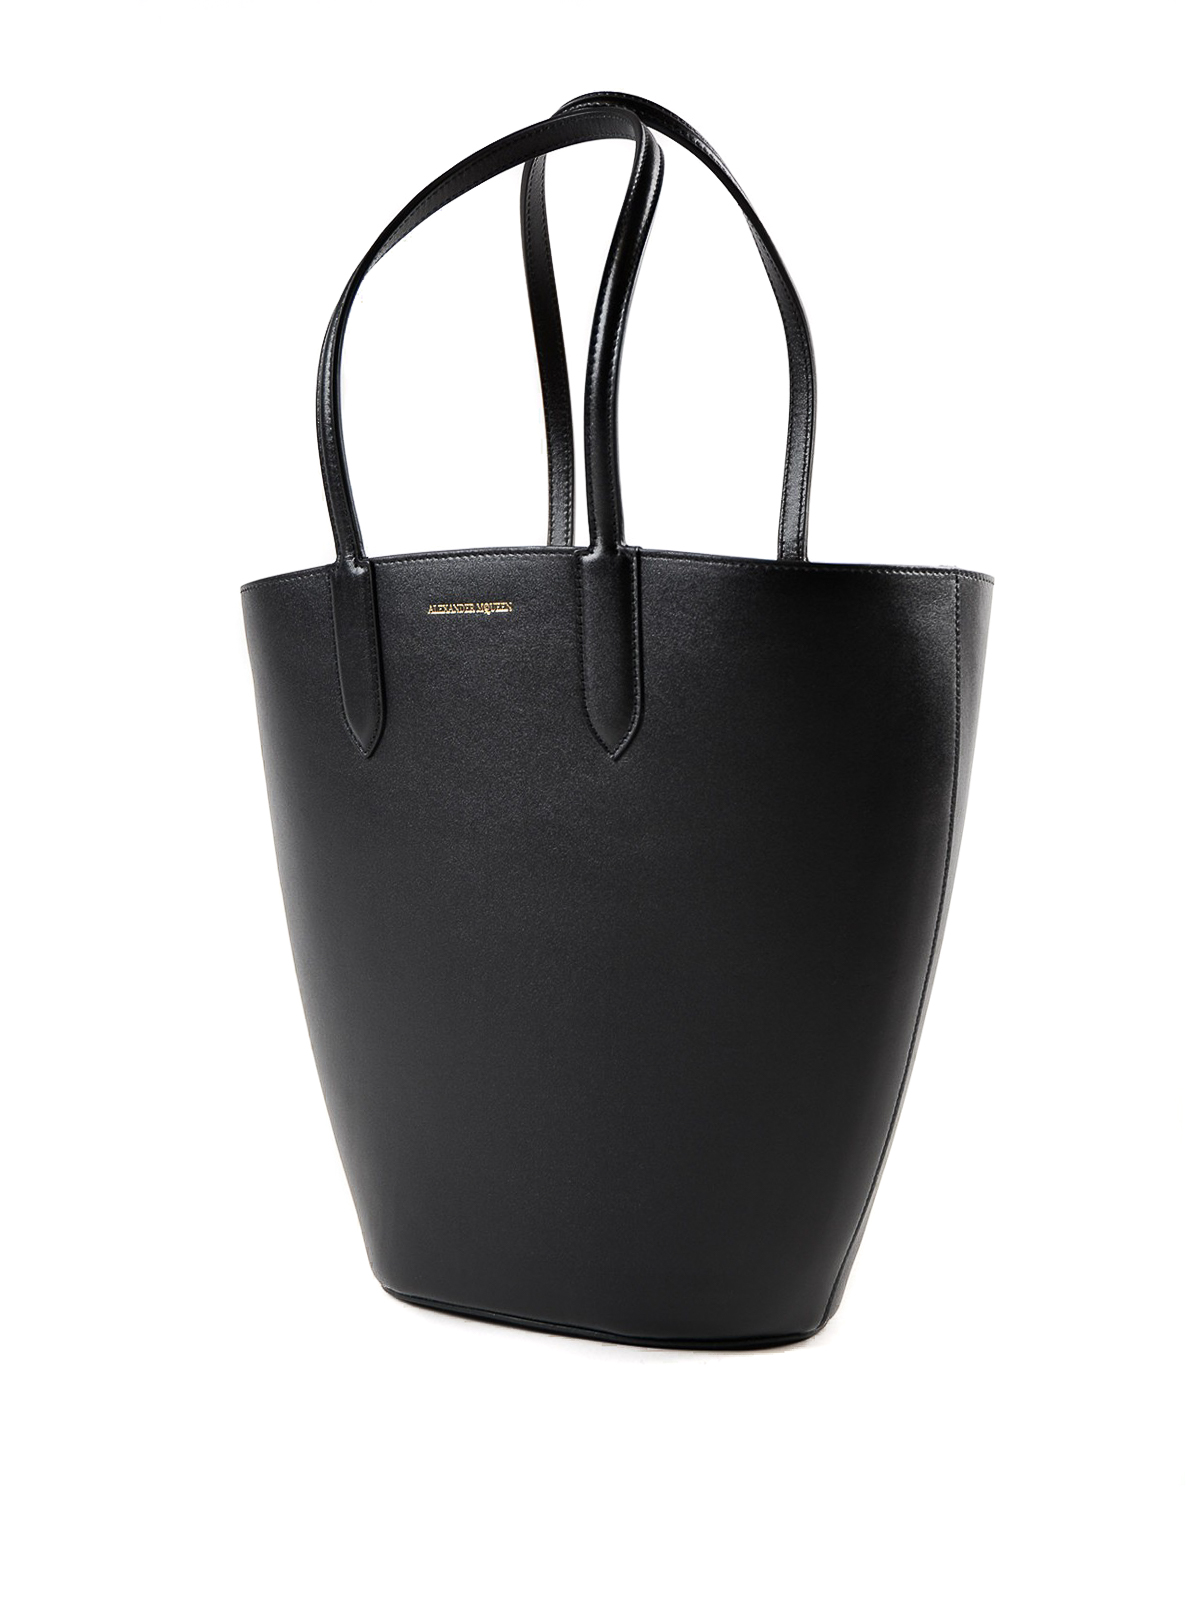 Alexander McQueen Basket Bag leather small tote O9zOS6f9